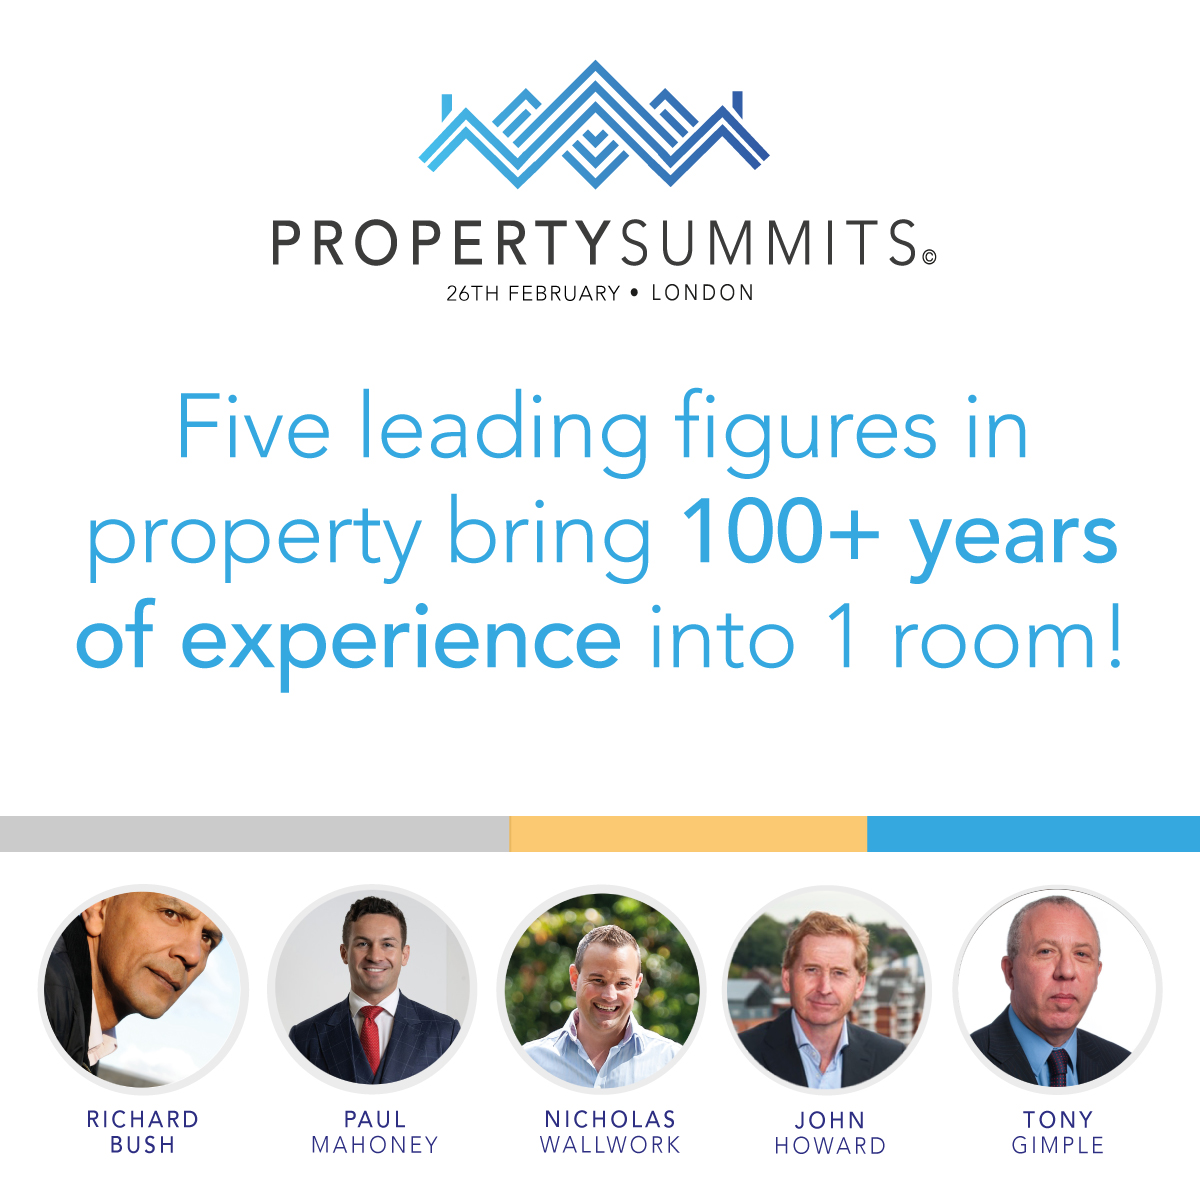 Property Summits event in London